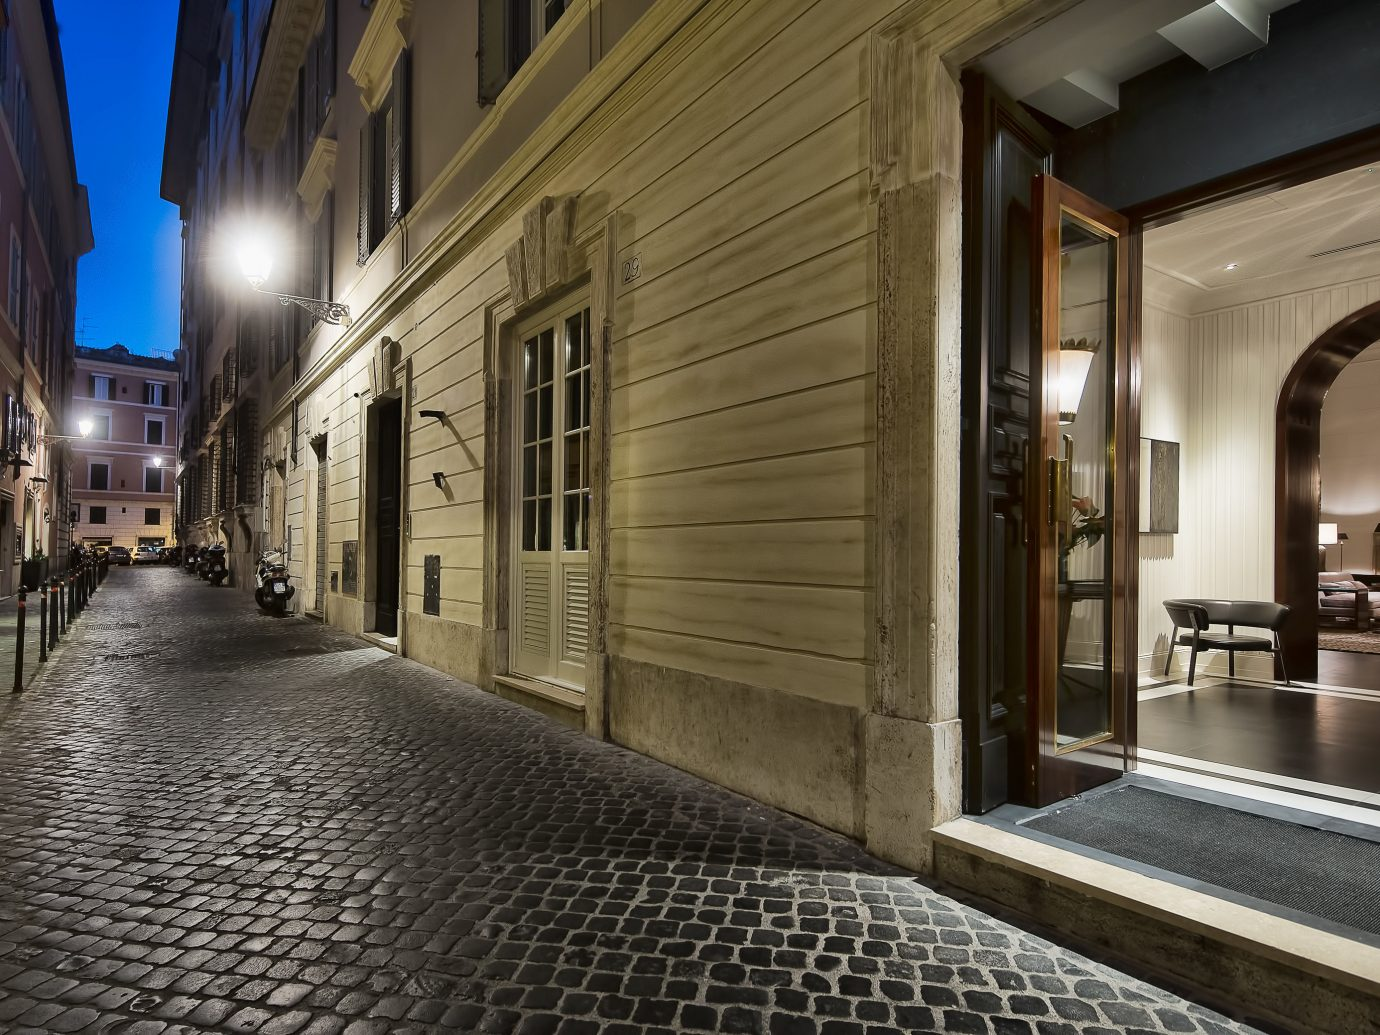 Boutique Hotels Hotels Italy Luxury Travel Romantic Hotels Rome way road street urban area Architecture sidewalk alley lighting estate interior design facade